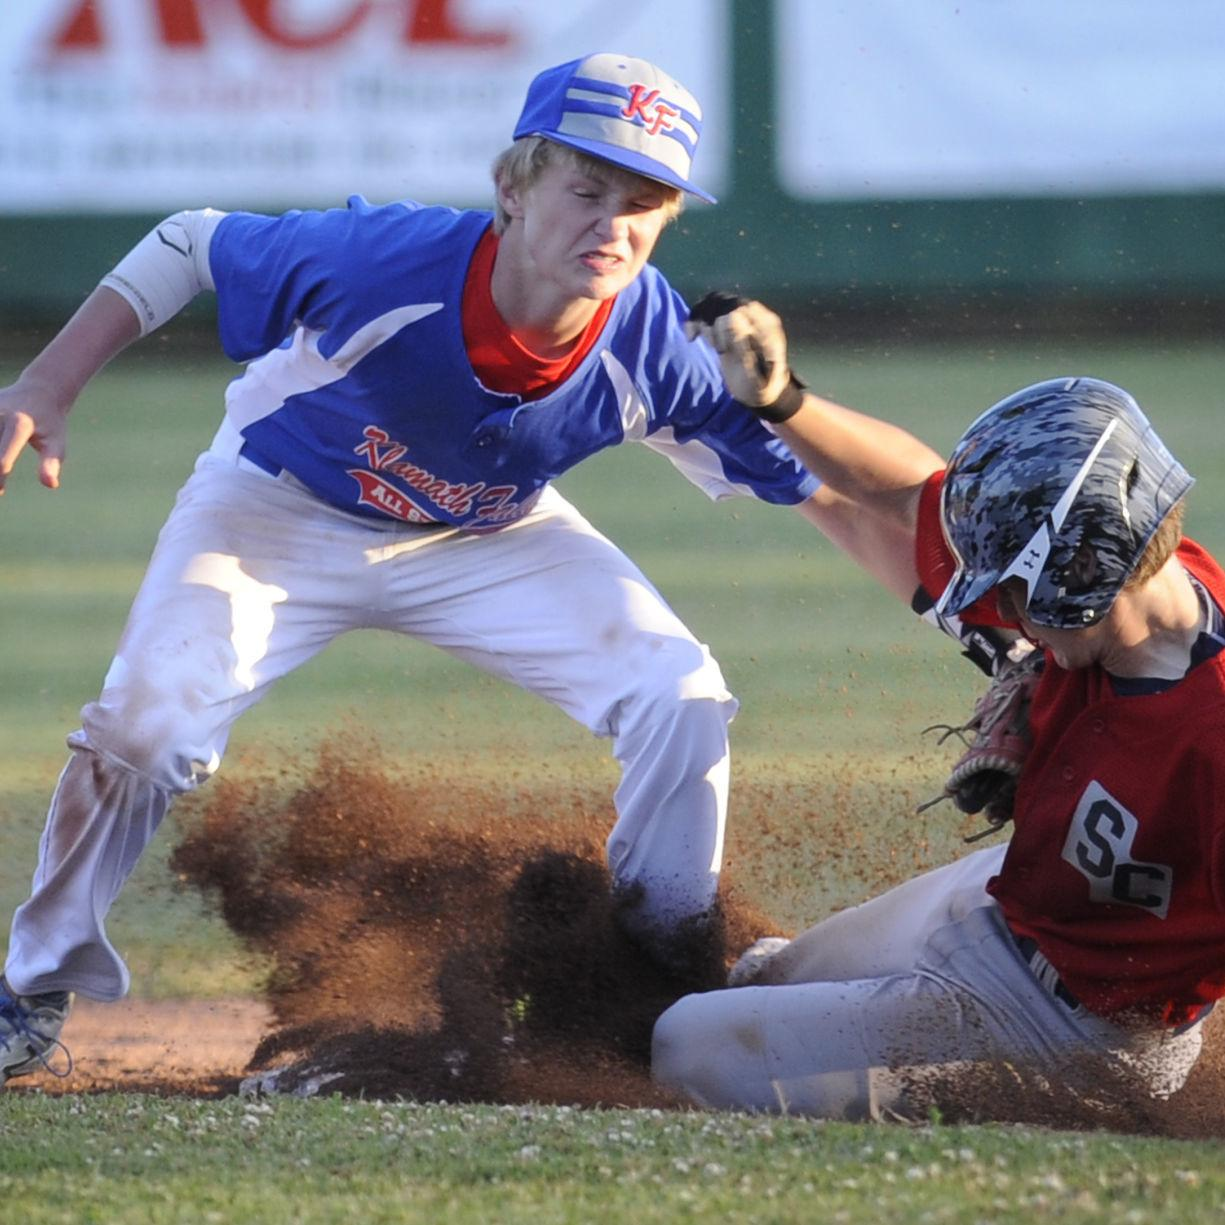 South Coast hosts Babe Ruth state tourney | Local Sports